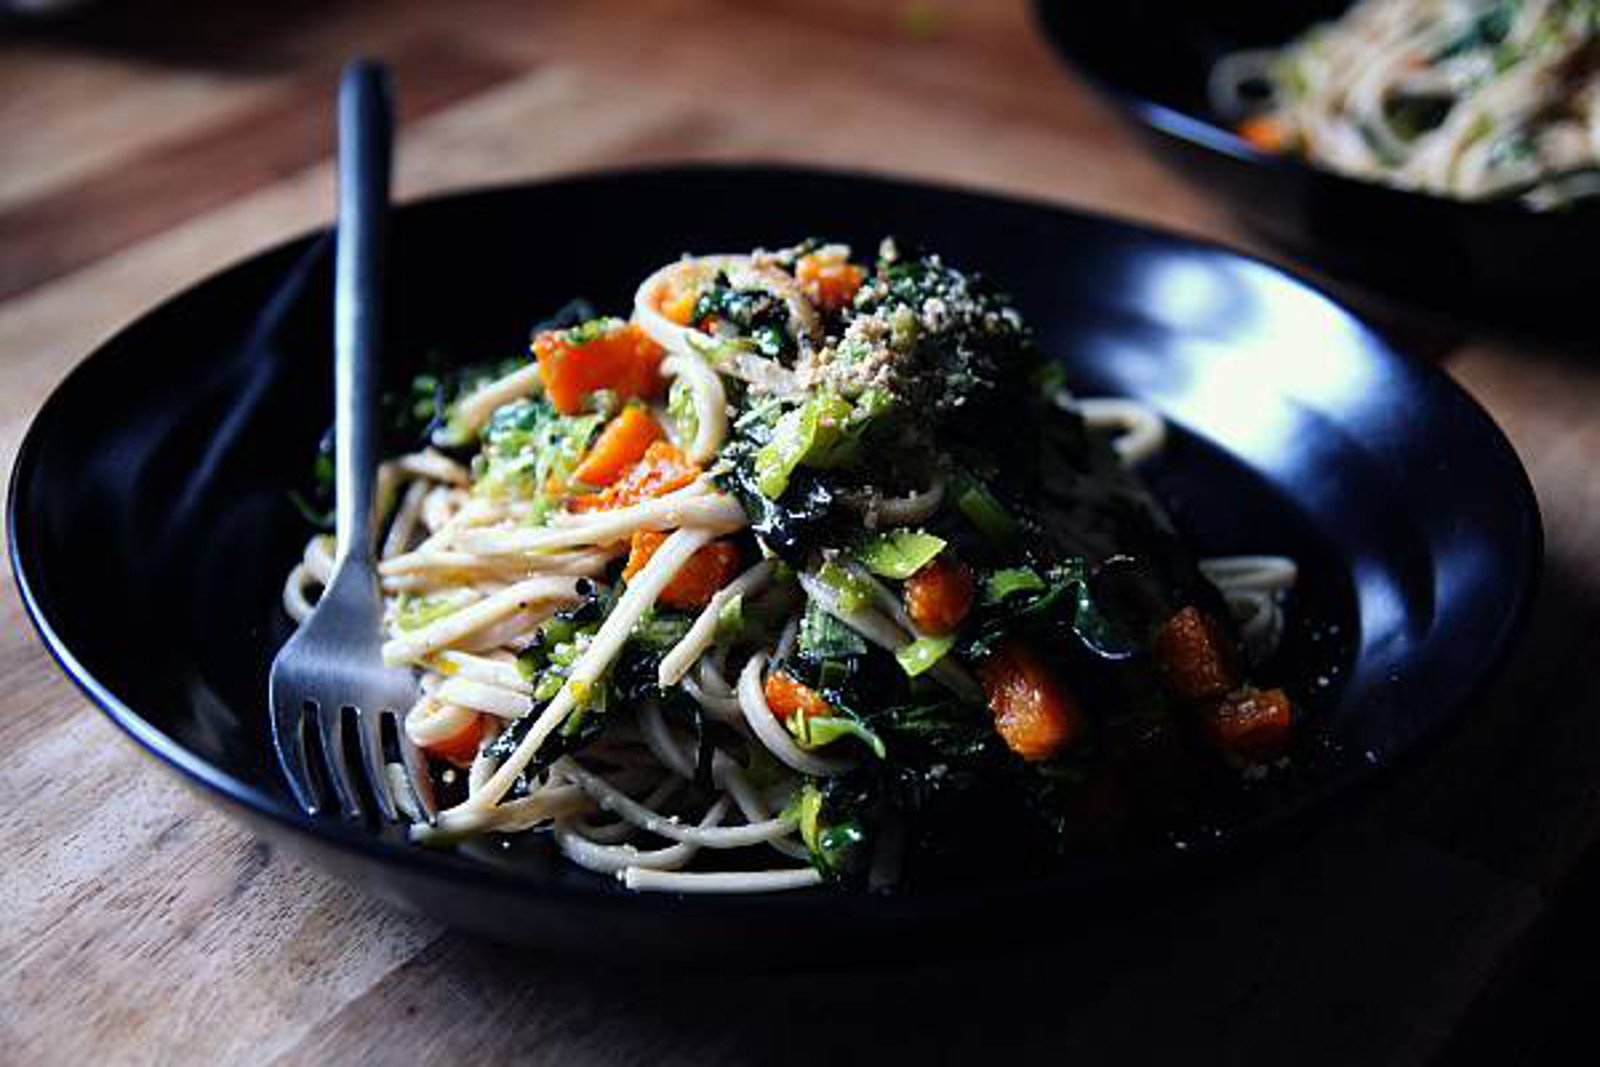 Dishes That Are Packed With Fresh, Nutritious Veggies